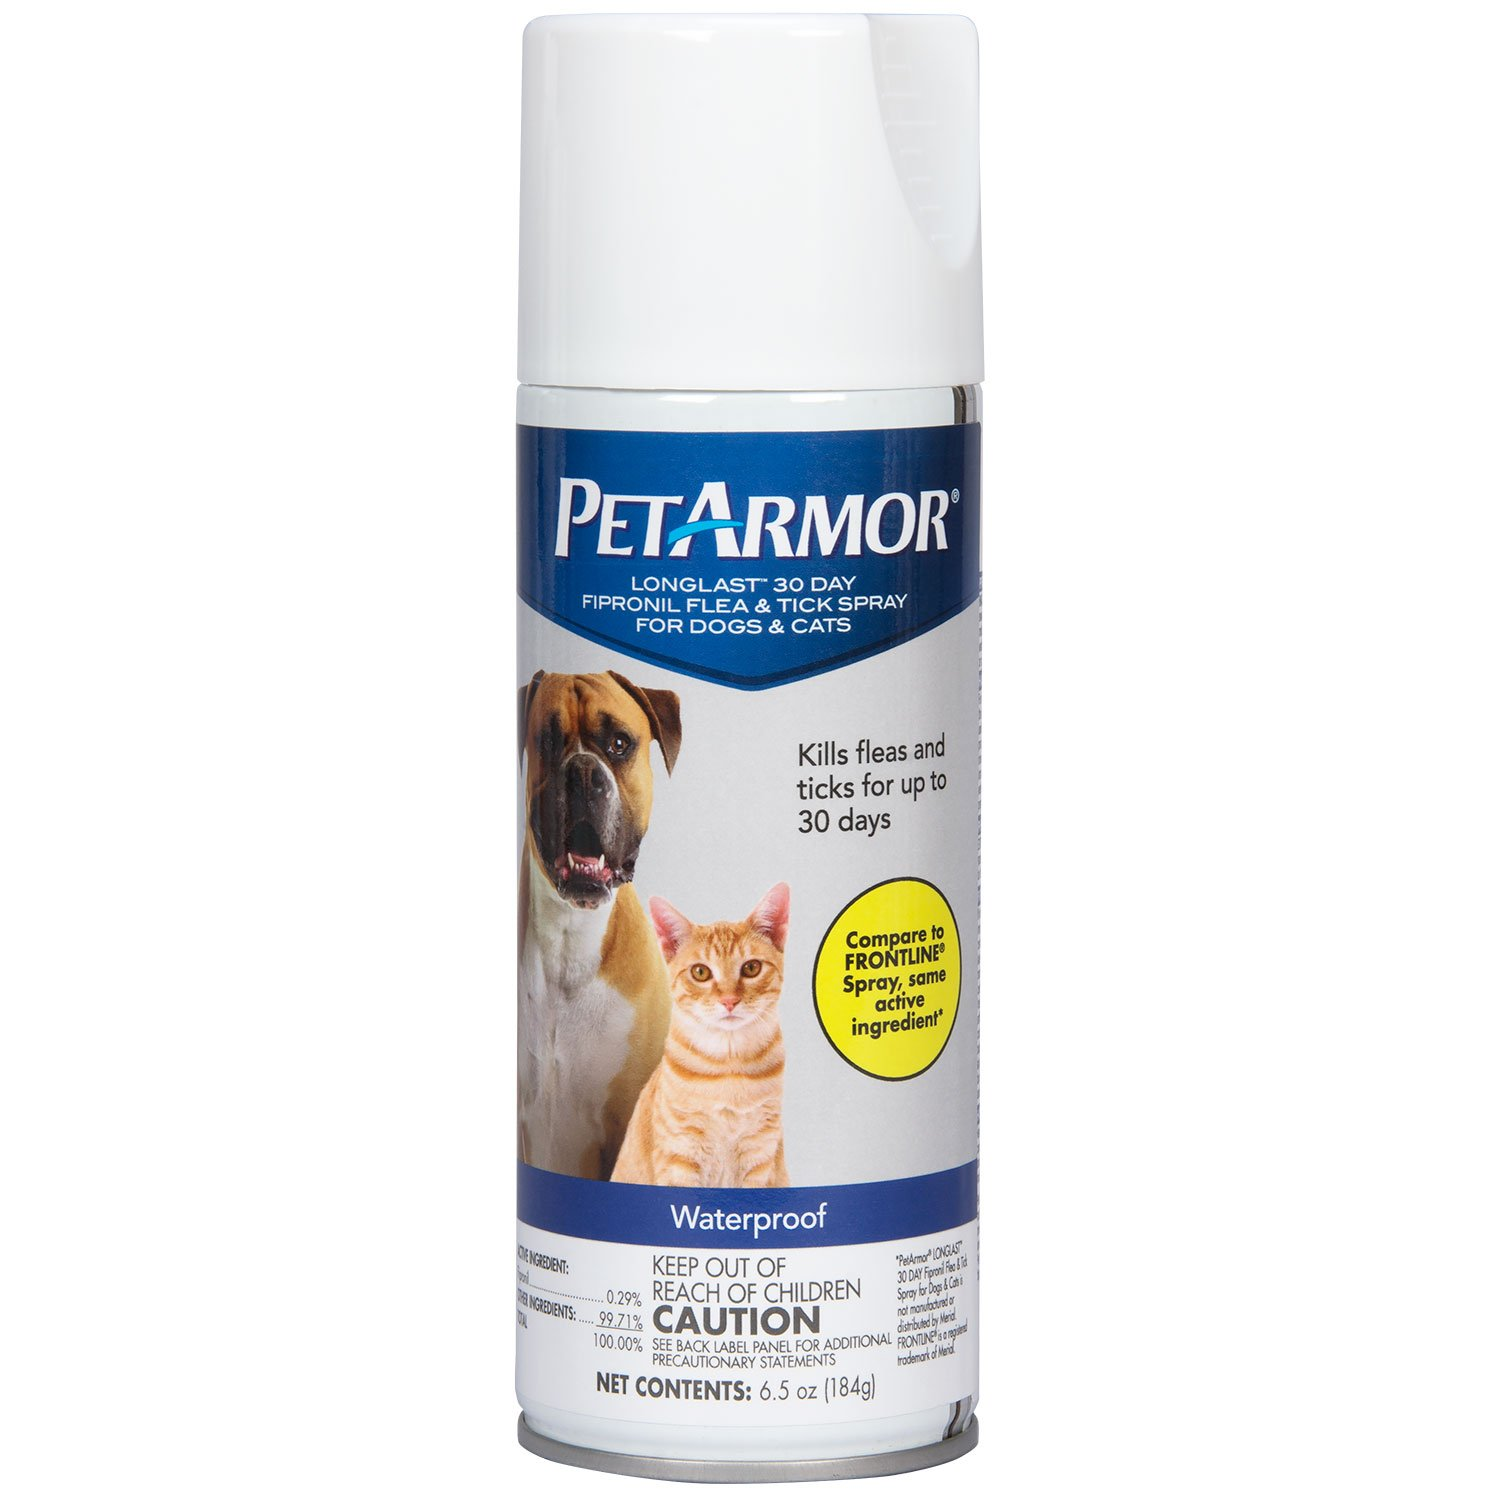 Petarmor?? Fipronil Flea & Tick Spray Dog/Cat 6.5 oz. Case: Amazon.es: Productos para mascotas